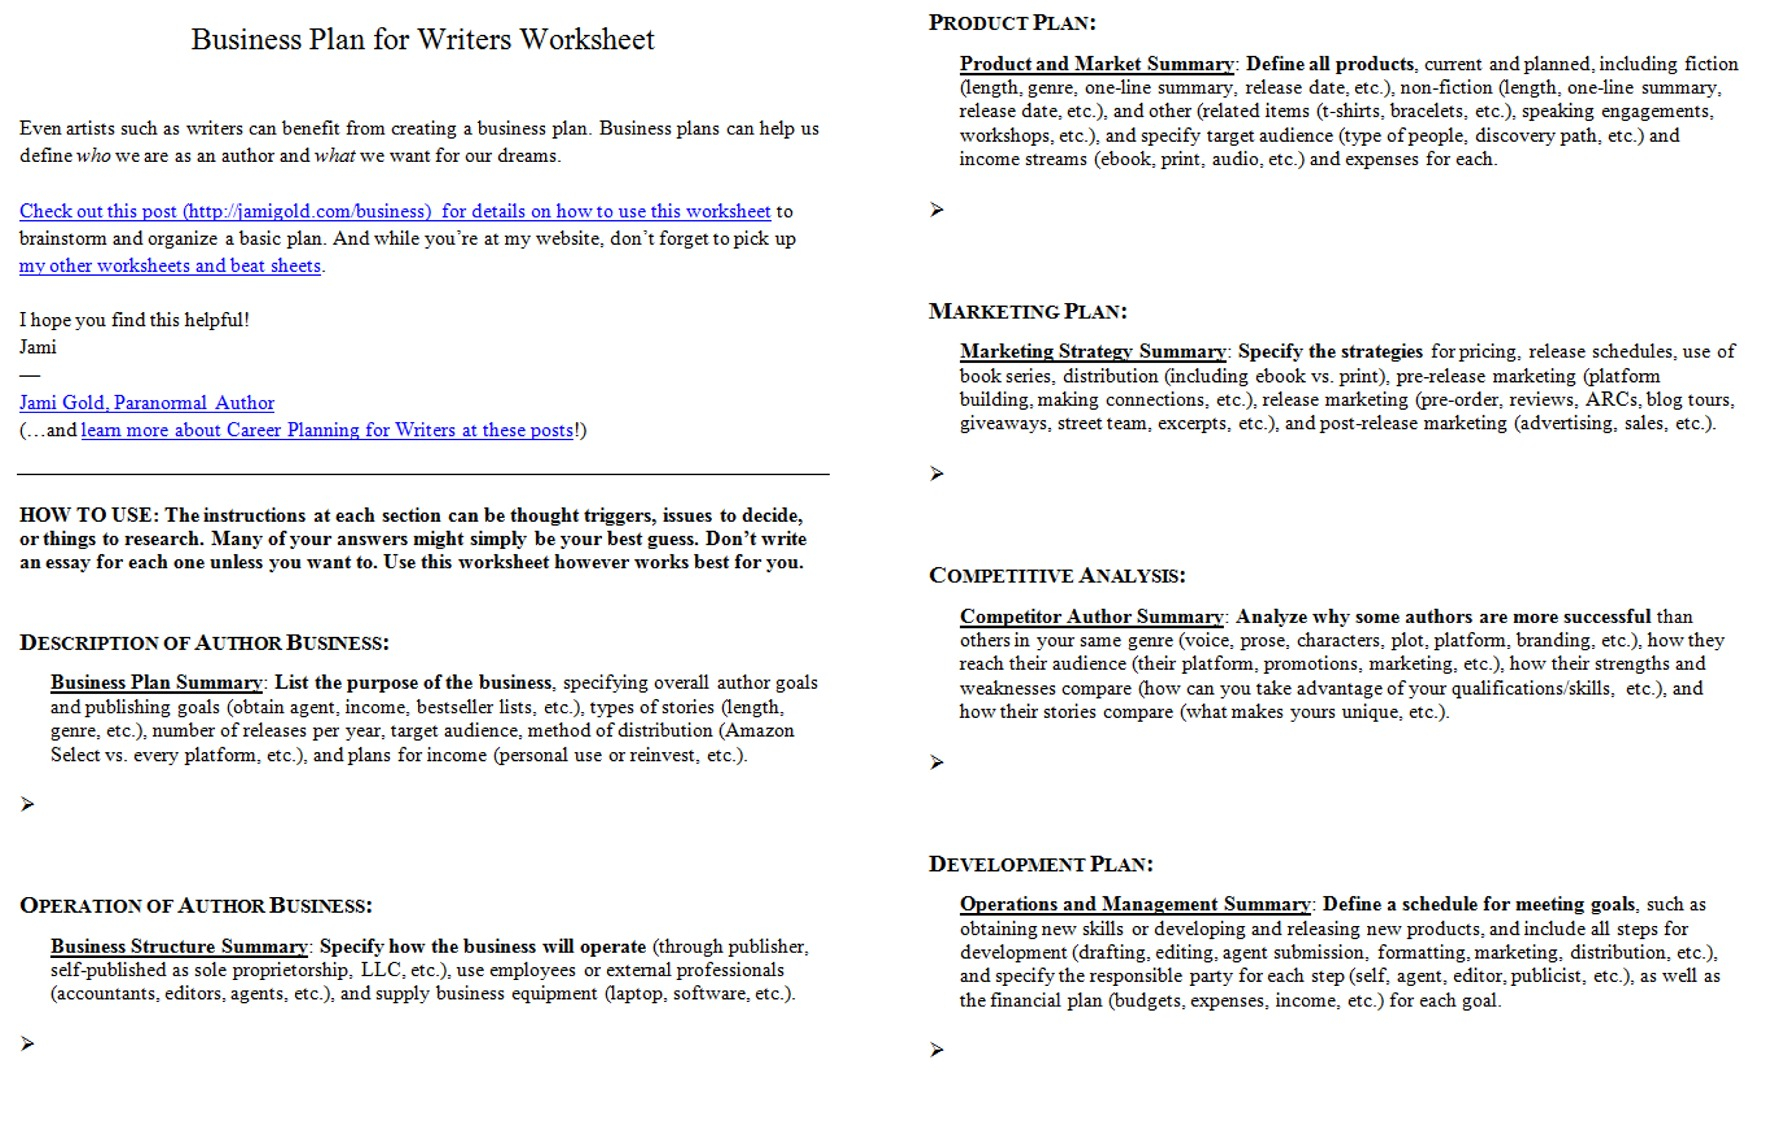 Proatmealus  Winning Worksheets For Writers  Jami Gold Paranormal Author With Luxury Screen Shot Of Both Pages Of The Business Plan For Writers Worksheet With Awesome Free Quotation Worksheets Also Contractions In English Worksheets In Addition Maths Worksheets For Grade  And Orthographic Drawings Worksheets As Well As Grammar Worksheets Grade  Additionally Noun Worksheet For Nd Grade From Jamigoldcom With Proatmealus  Luxury Worksheets For Writers  Jami Gold Paranormal Author With Awesome Screen Shot Of Both Pages Of The Business Plan For Writers Worksheet And Winning Free Quotation Worksheets Also Contractions In English Worksheets In Addition Maths Worksheets For Grade  From Jamigoldcom